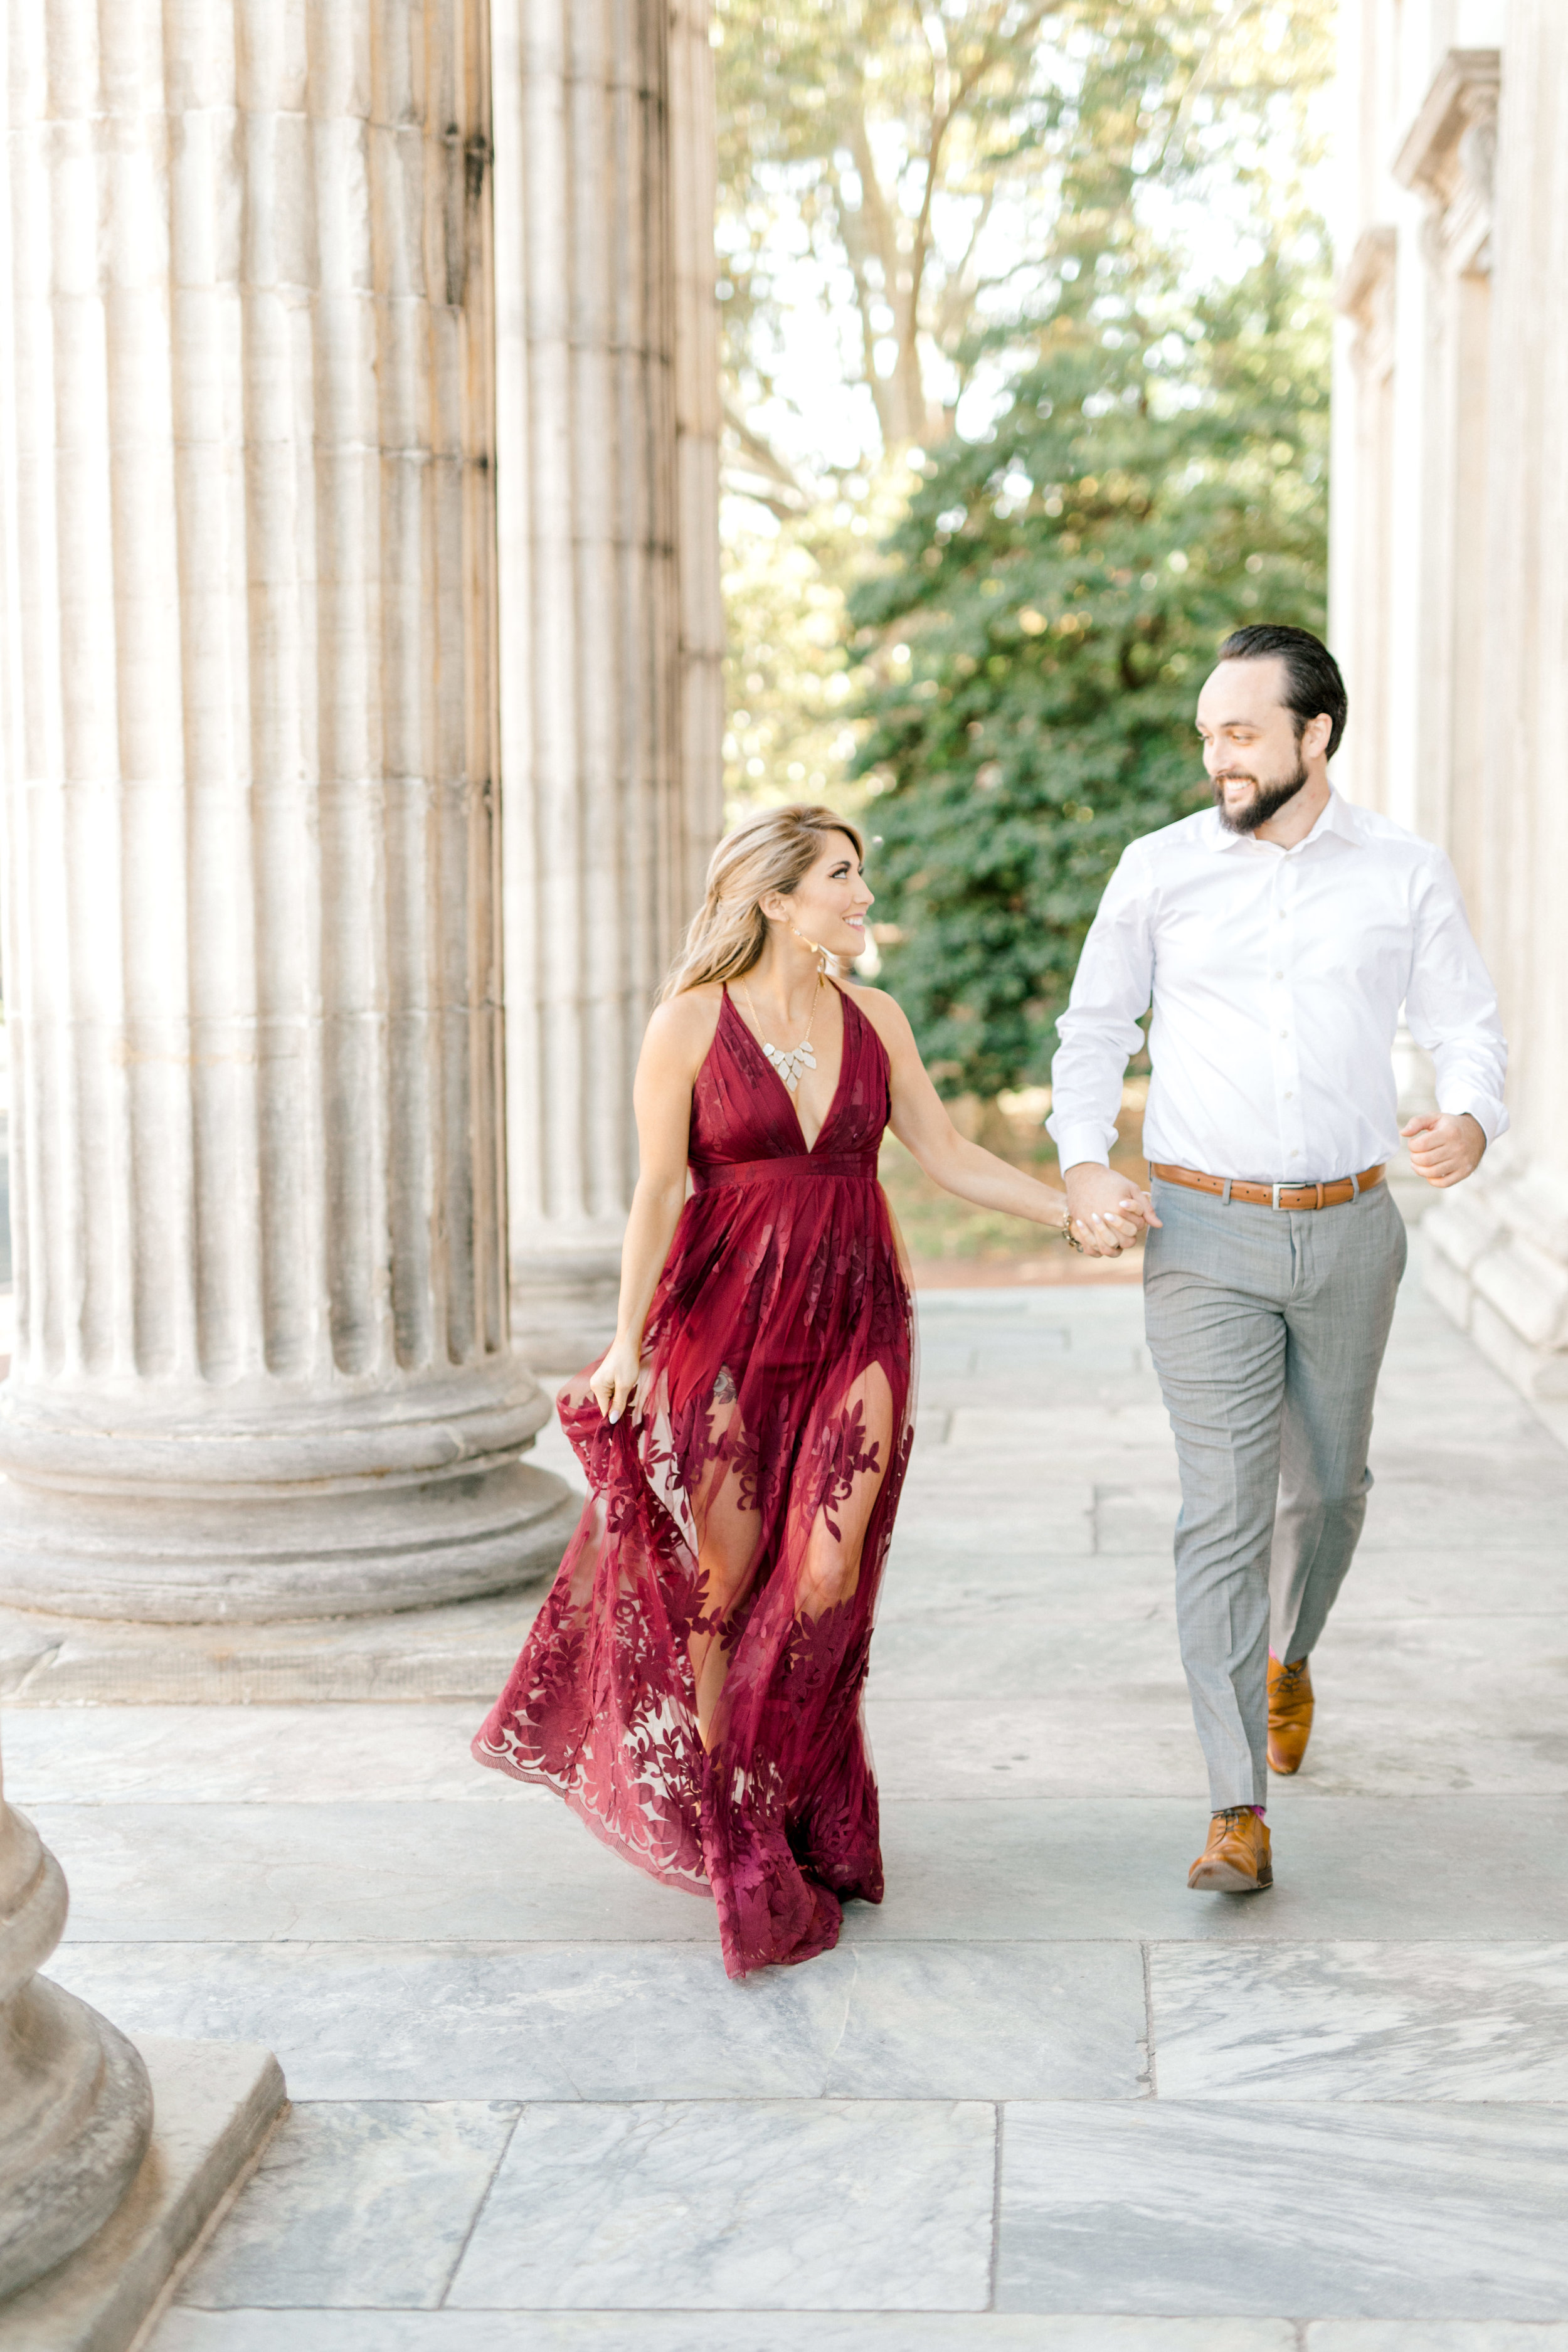 We loved the burgundy and white look for Nikki and Dale's romantic engagement session in Old City Philadelphia.